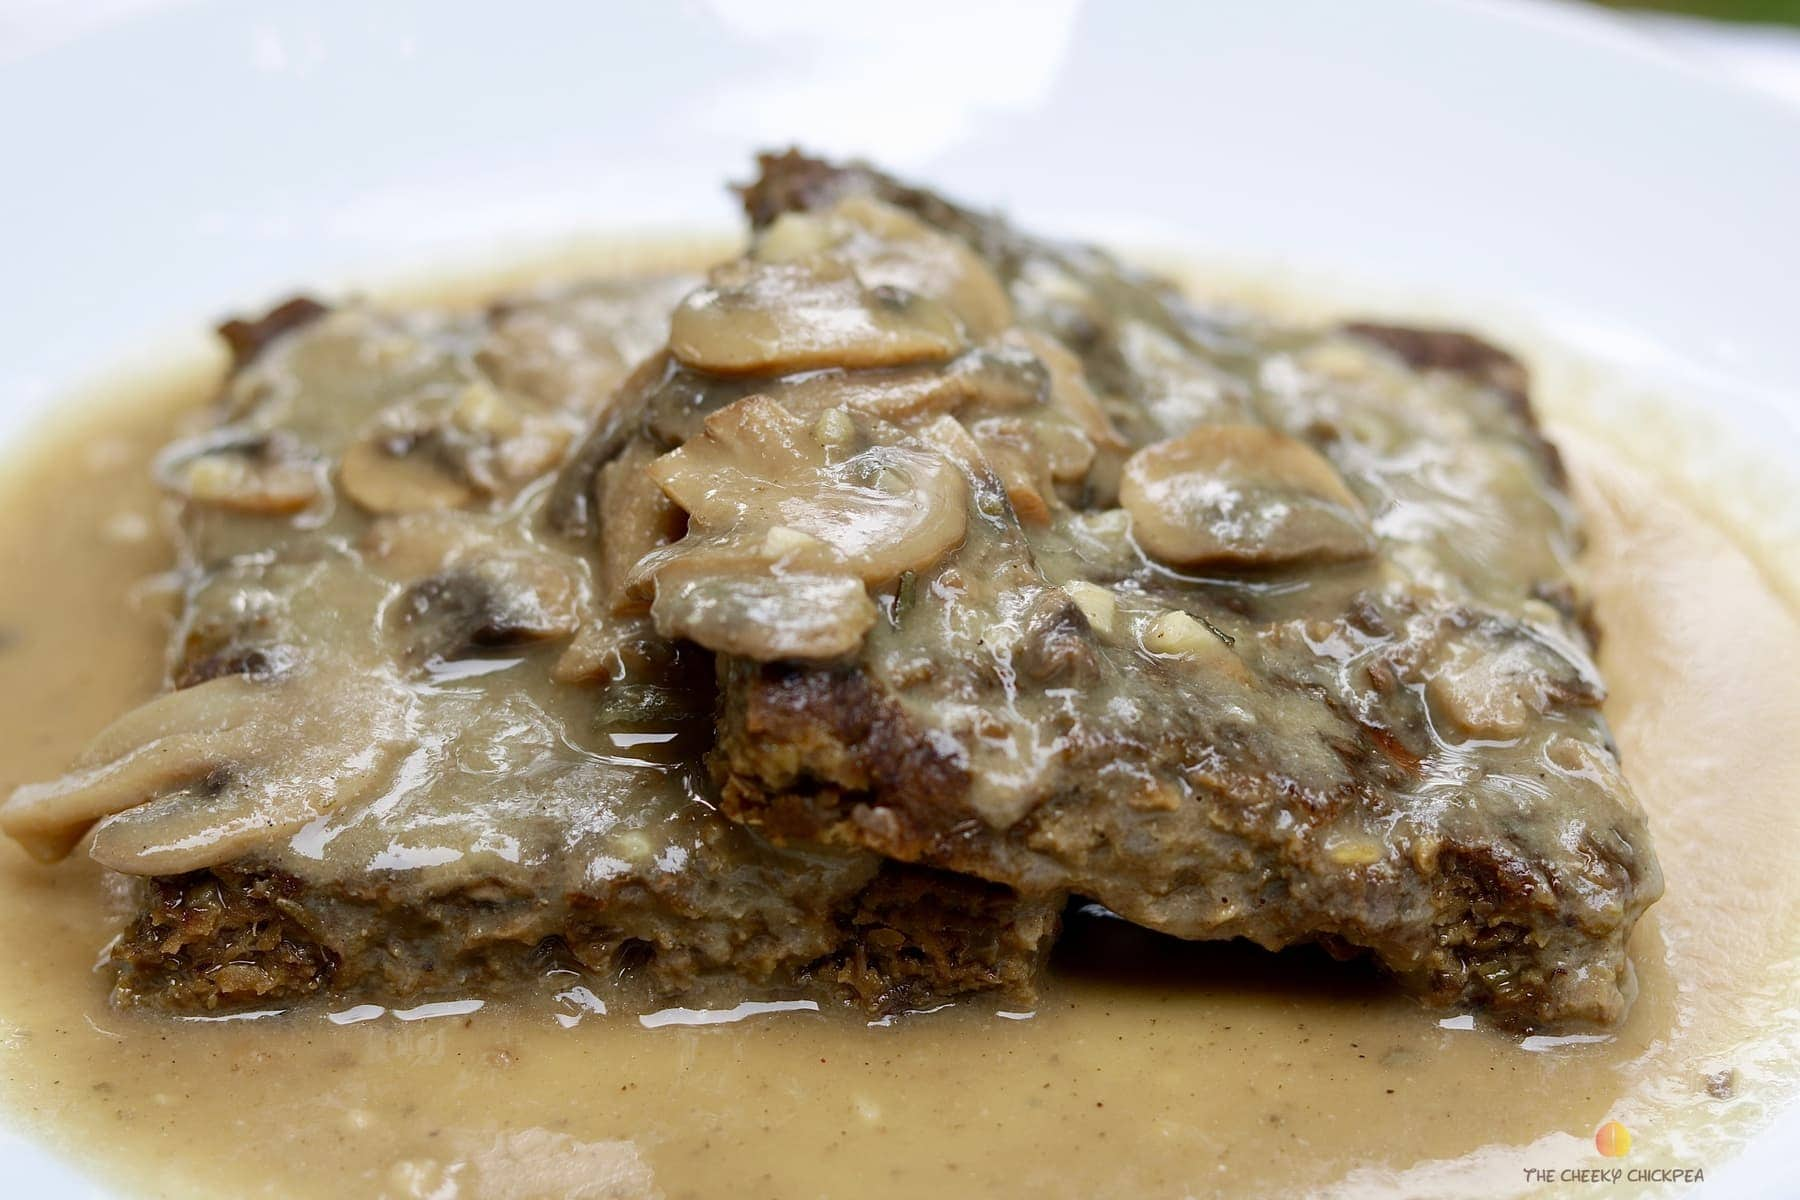 vegan salsbury steak recipe on a white plate